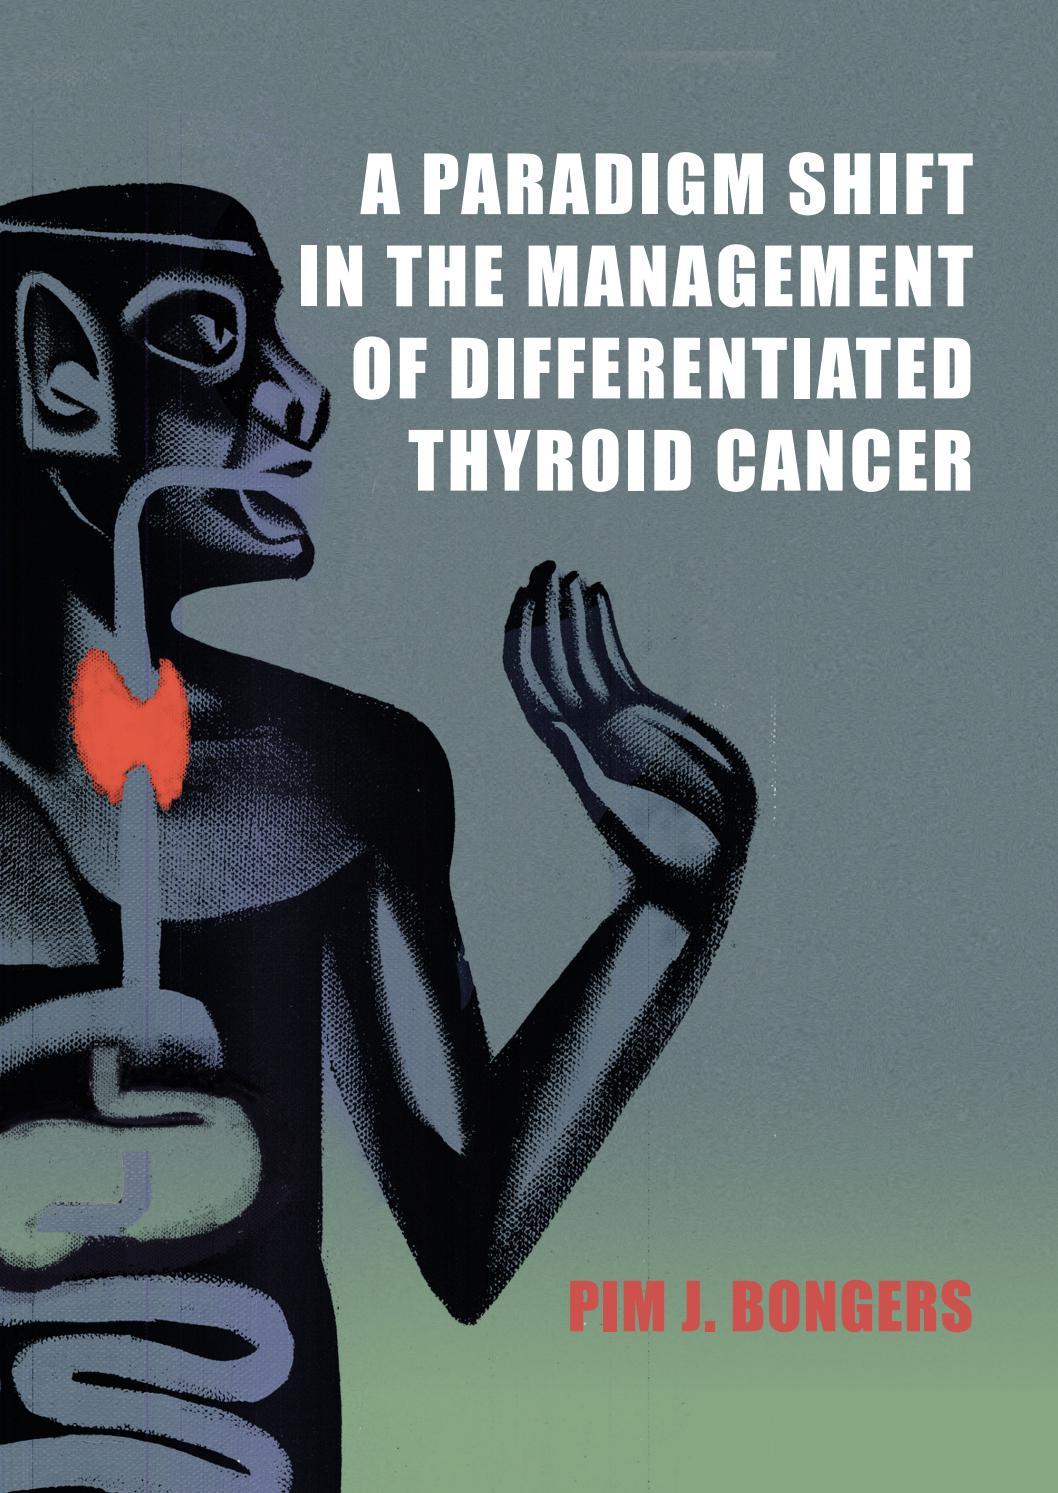 A Paradigm Shift In The Management Of Differentiated Thyroid